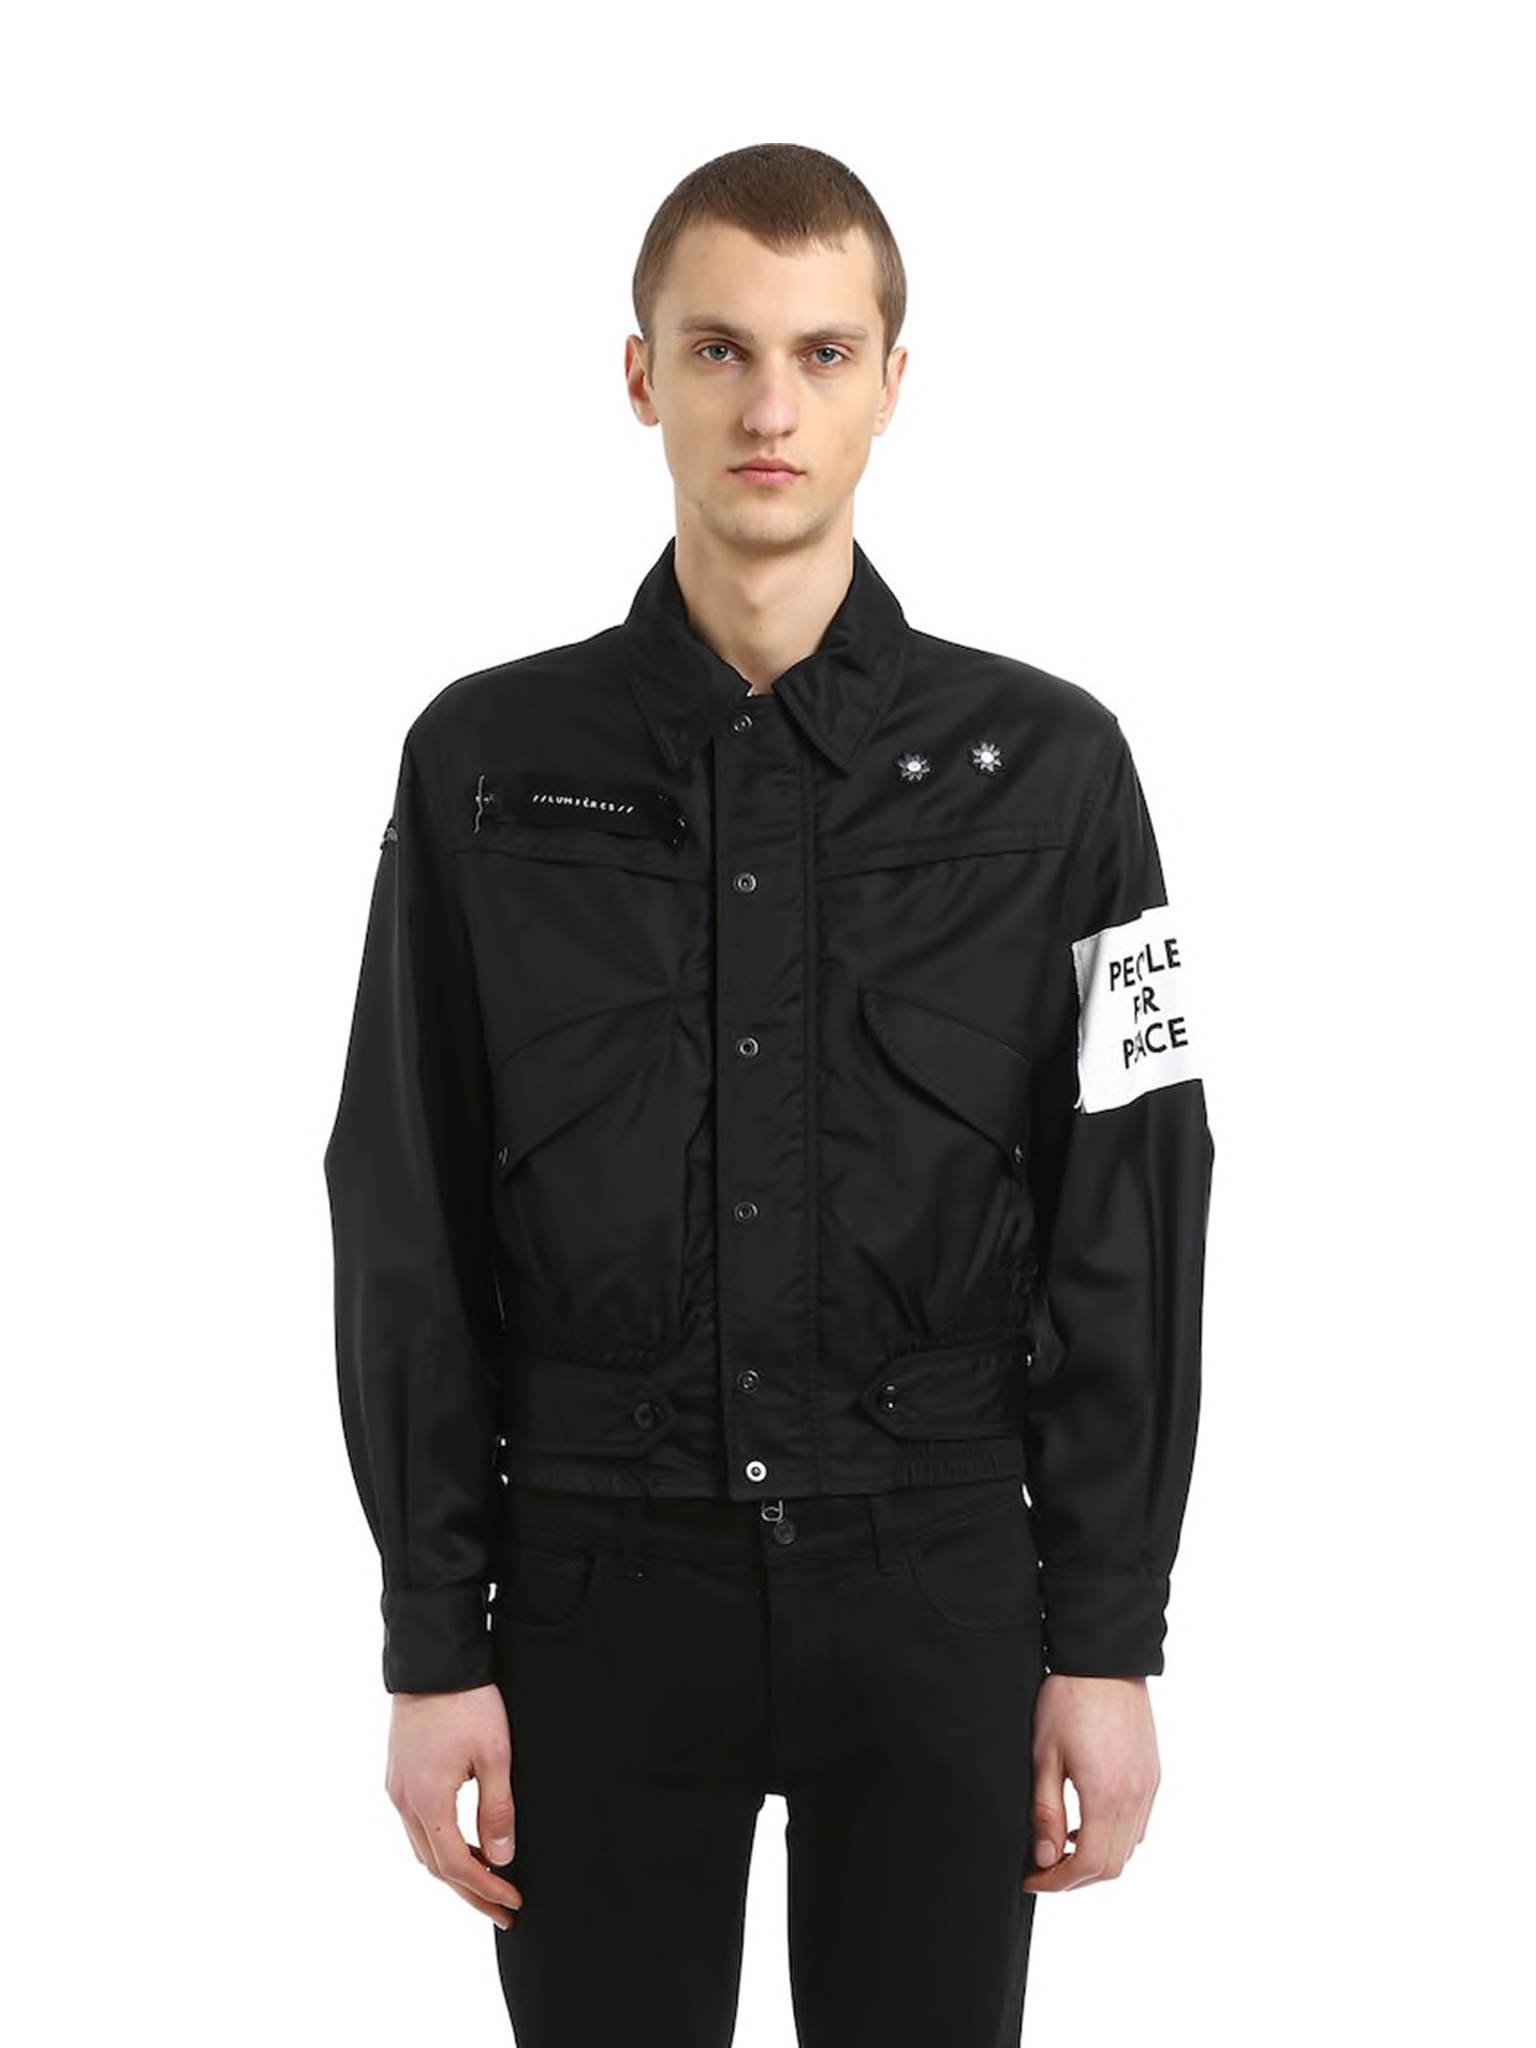 Captain Nylon Jacket With Patch  OAMC